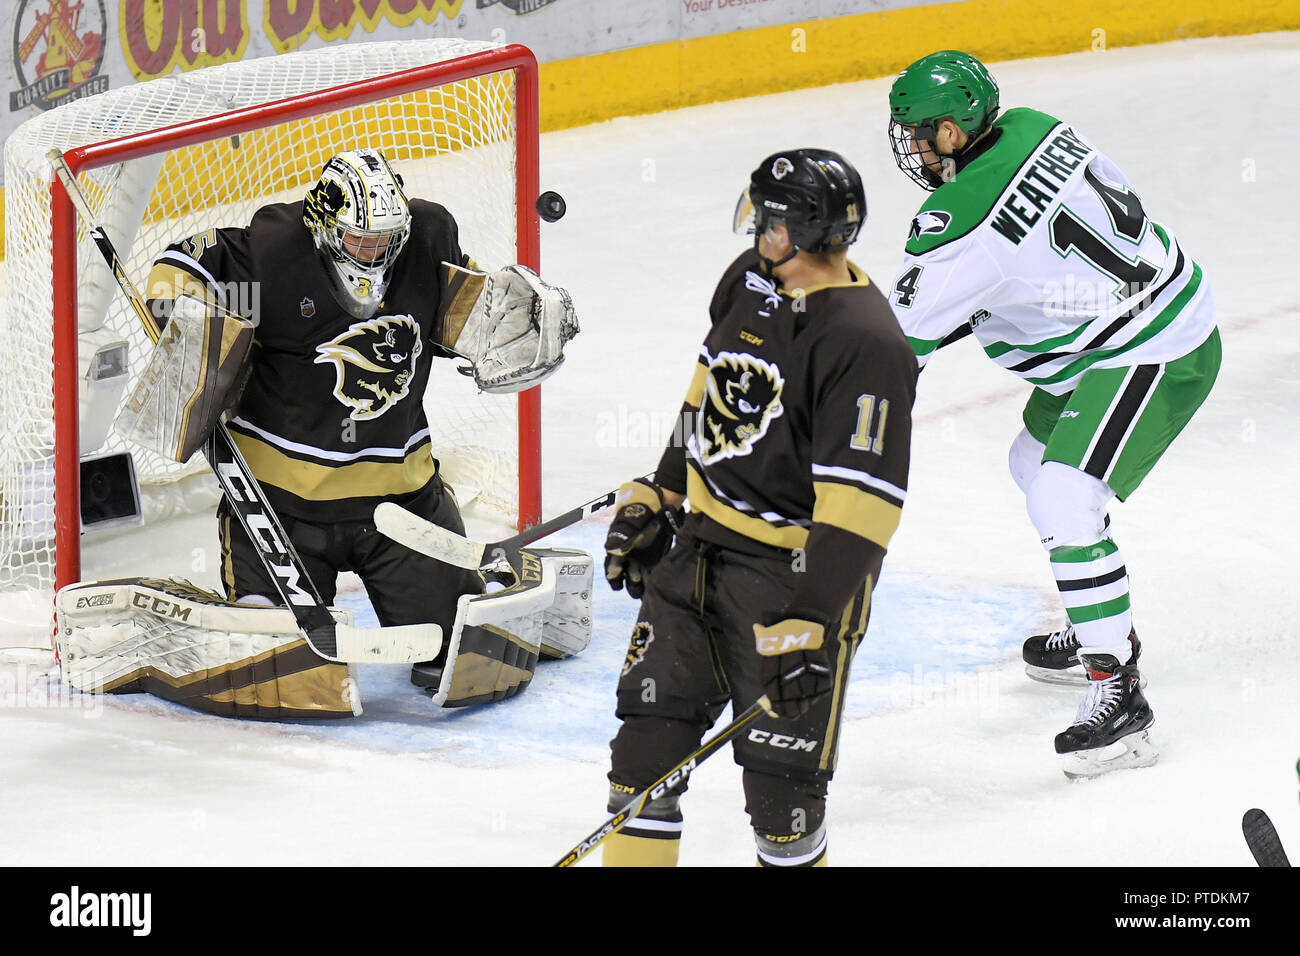 October 6, 2018 North Dakota Fighting Hawks forward Jasper Weatherby (14) hits the post next to Manitoba Bisons goaltender Byron Spriggs (35) as Manitoba Bisons defenseman Mitchell Dyck (11) looks on in the third period of an exhibition men's college hockey game between the Manitoba Bisons and the University of North Dakota Fighting Hawks at Ralph Engelstad Arena in Grand Forks. North Dakota won 3-2 in overtime. Photo by Russell Hons/CSM - Stock Image